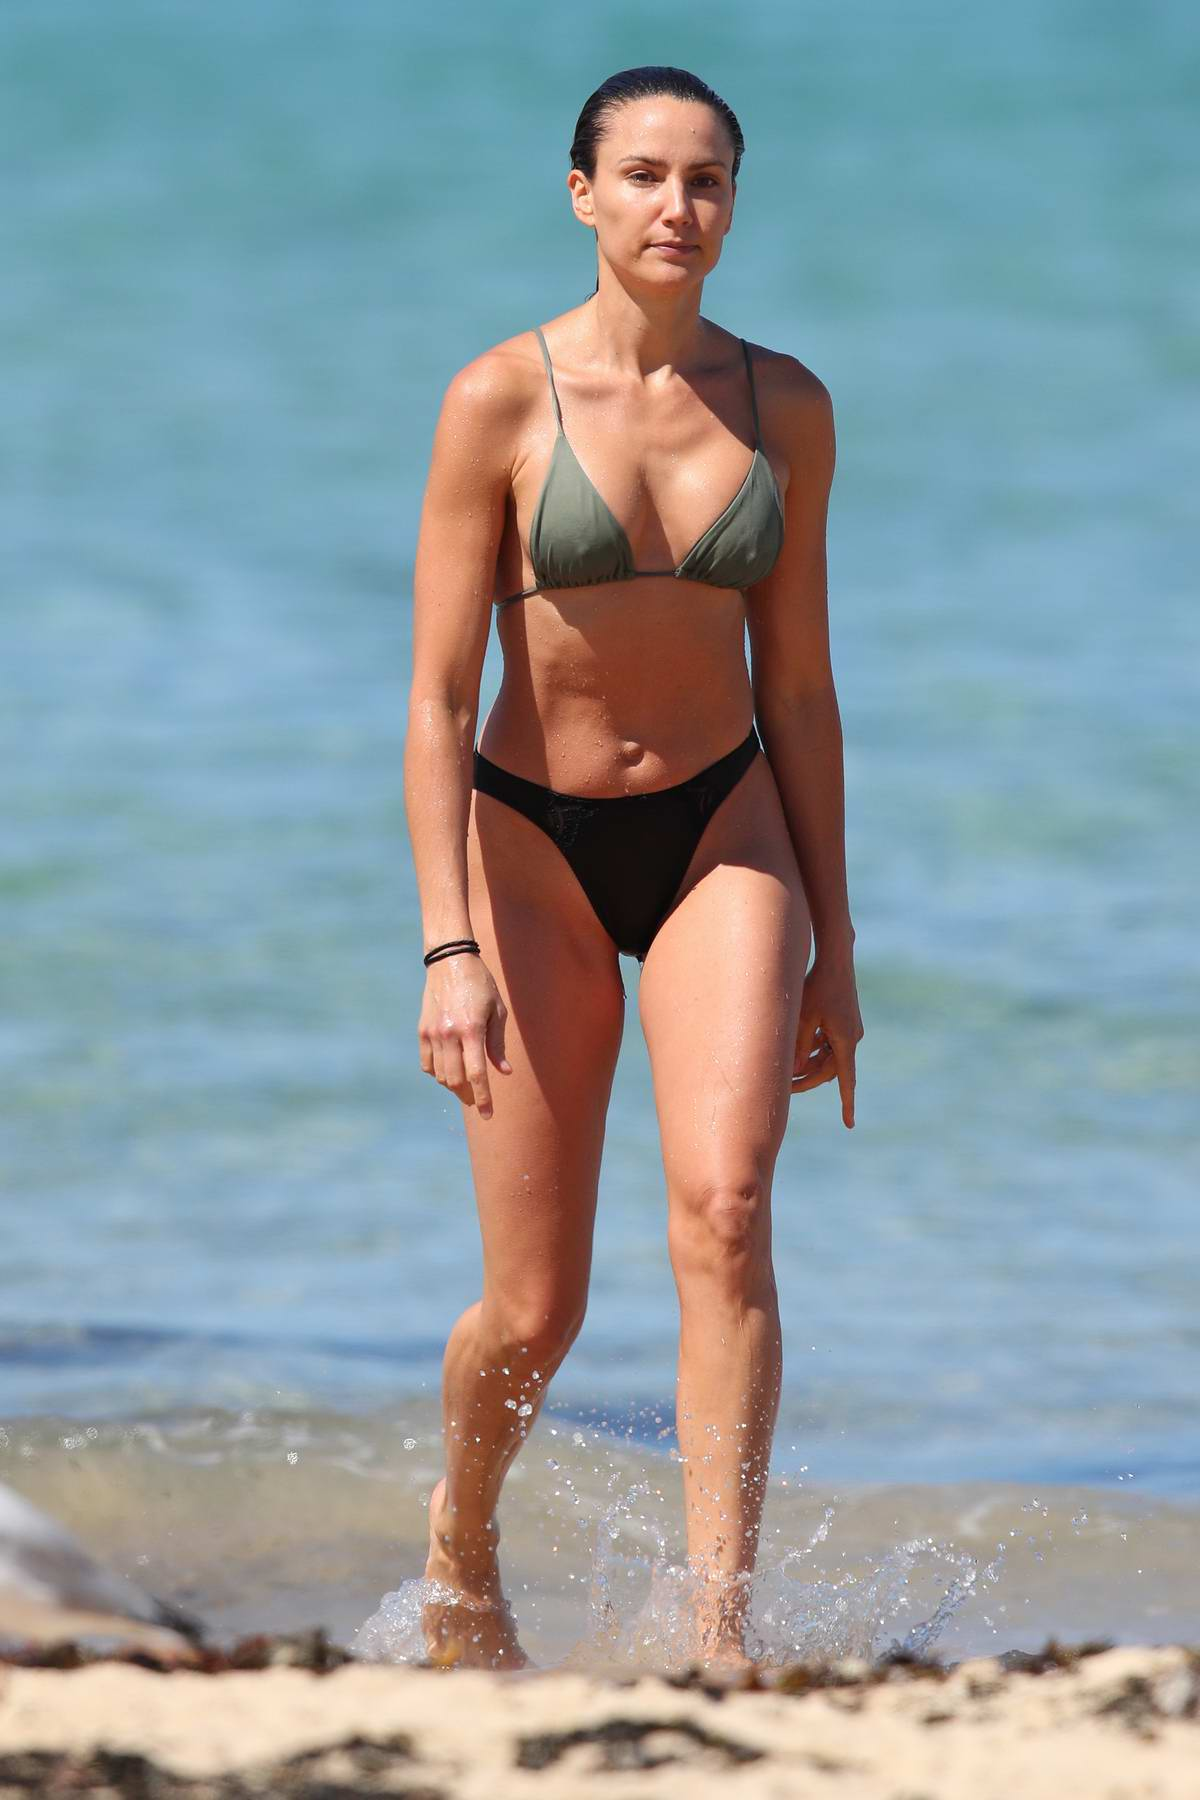 Rachael Finch spotted in a bikini as she takes a dip in the ocean at North Bondi beach in Sydney, Australia